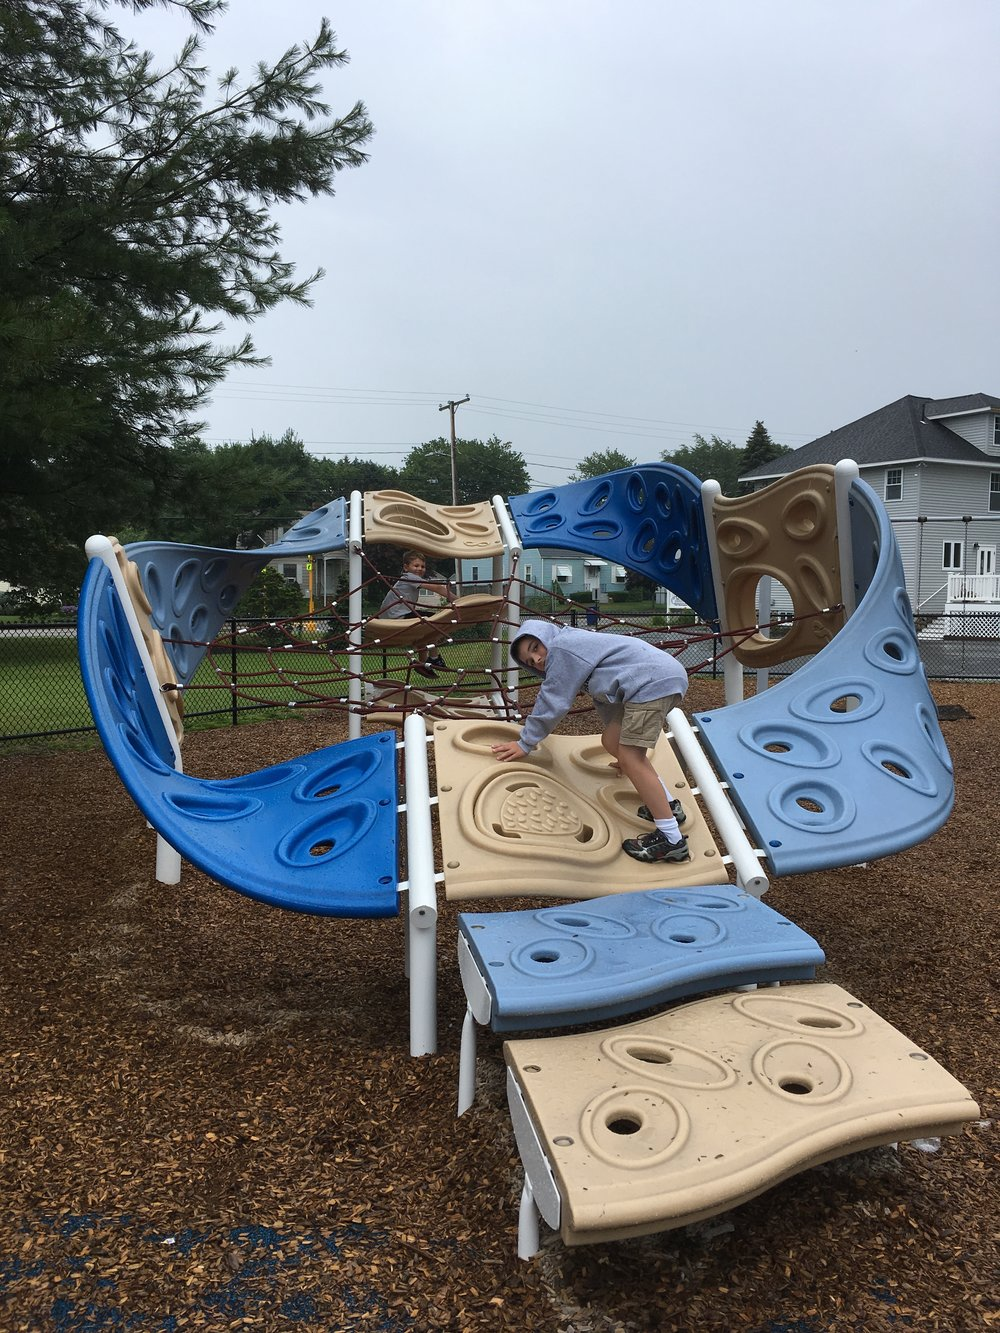 Jacob was mindful of his footing in the rain, but loved Highlands Community Playground.